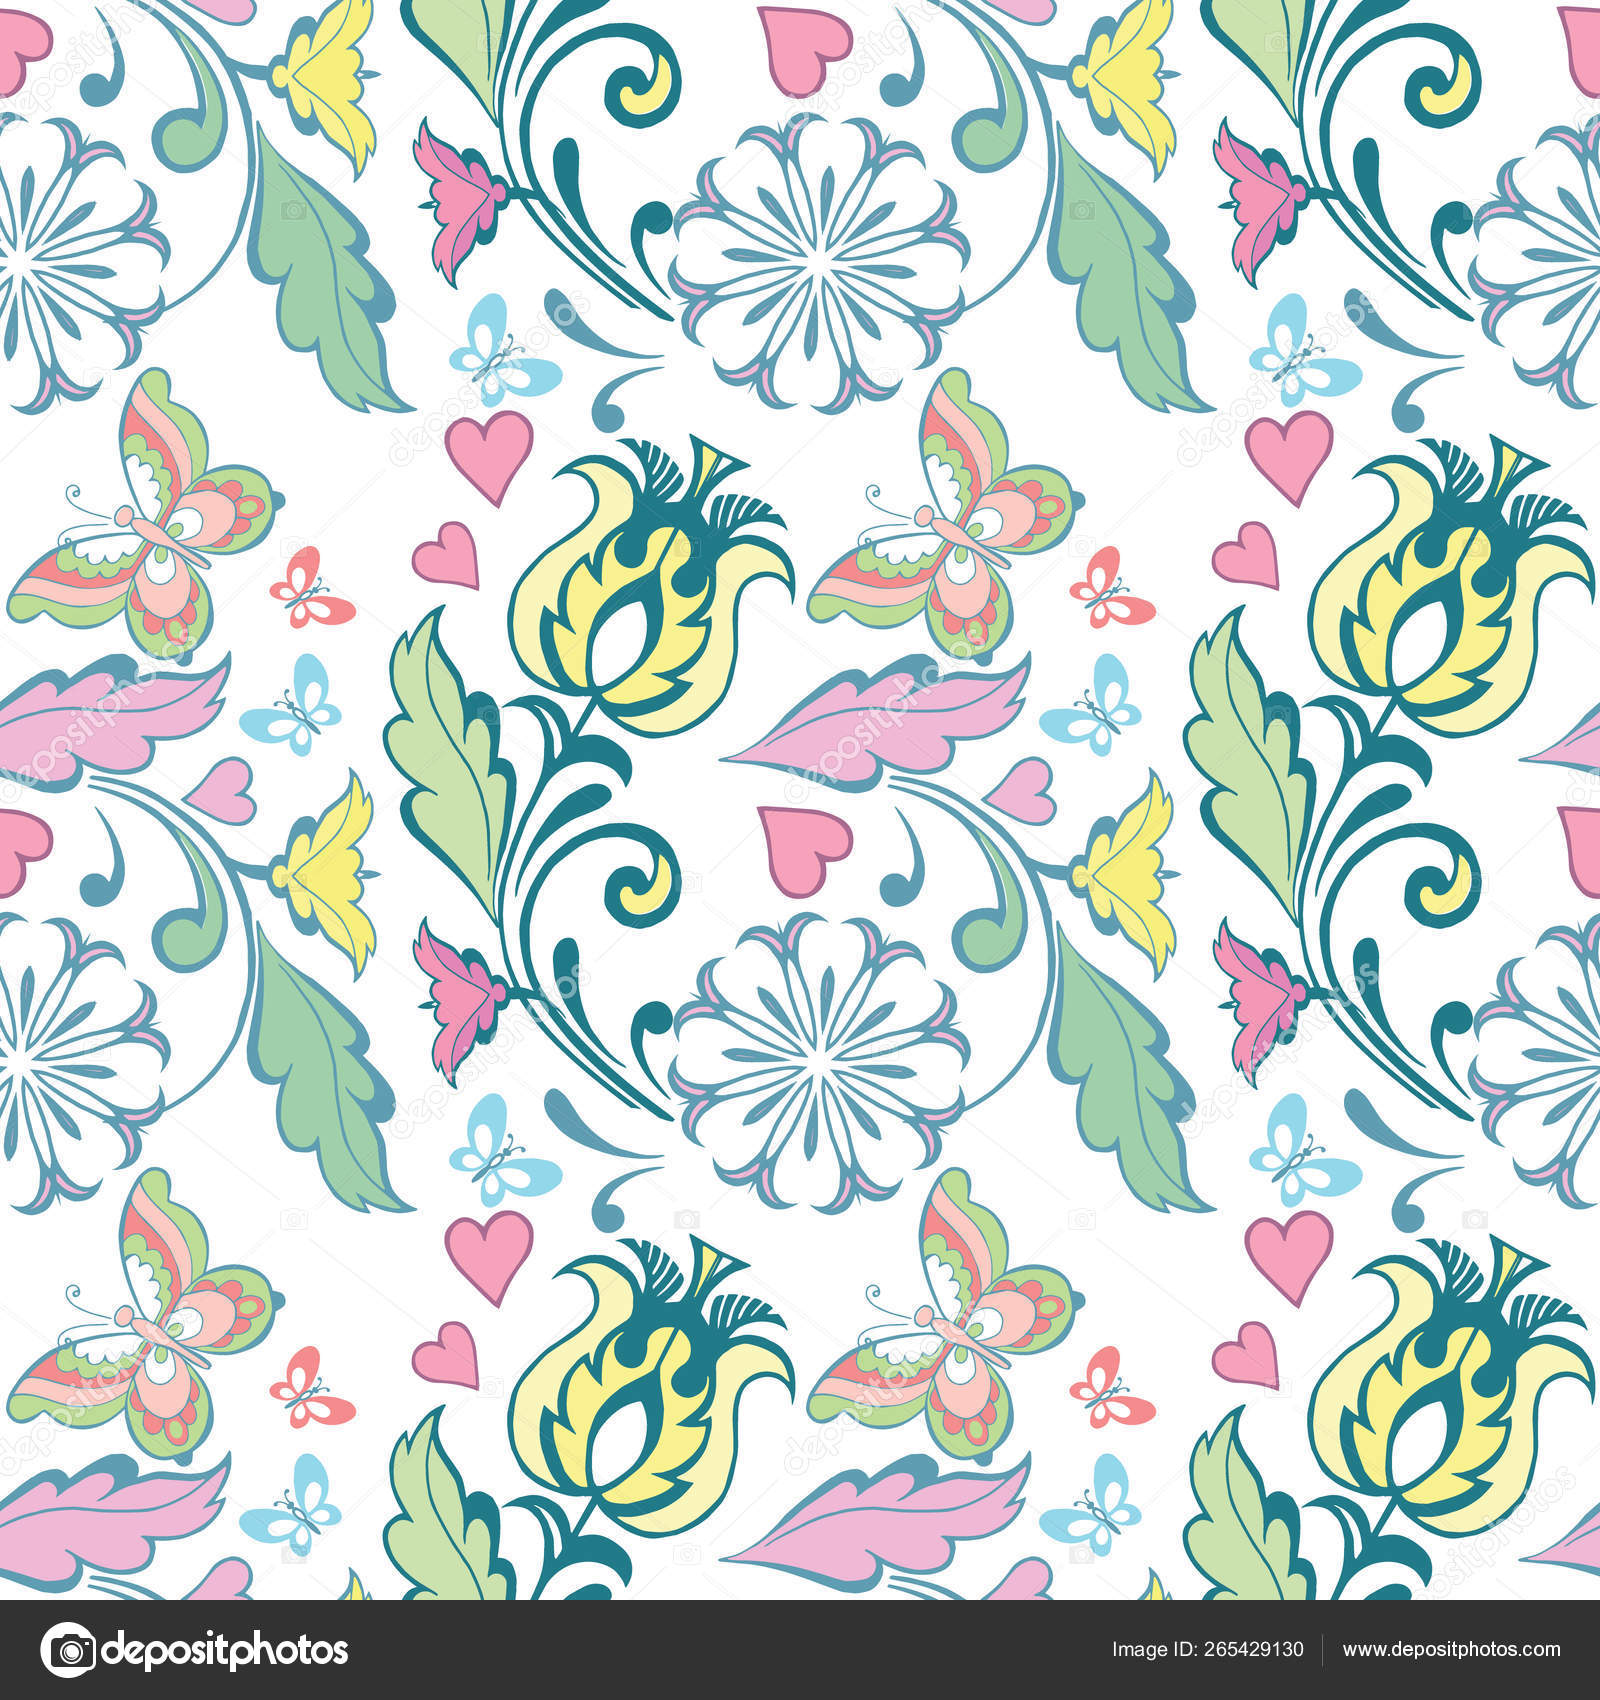 Summer Floral Seamless Patterns Butterflies Hearts Cute Floral